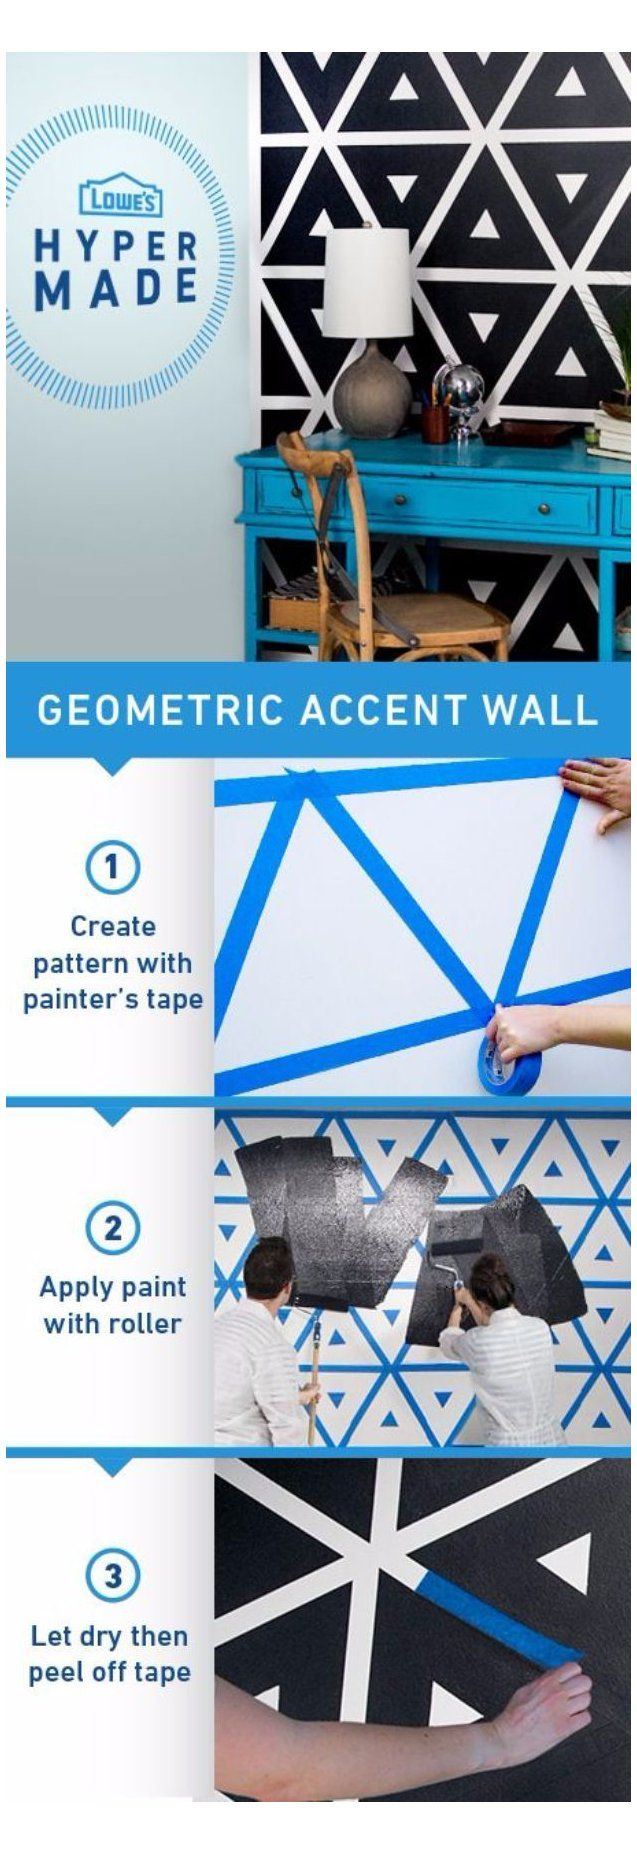 DIY Ideas for Painting Walls - Geometric Accent Wall - Cool Ways To Paint Walls - Techniques, Tips, Stenc #creativedesign